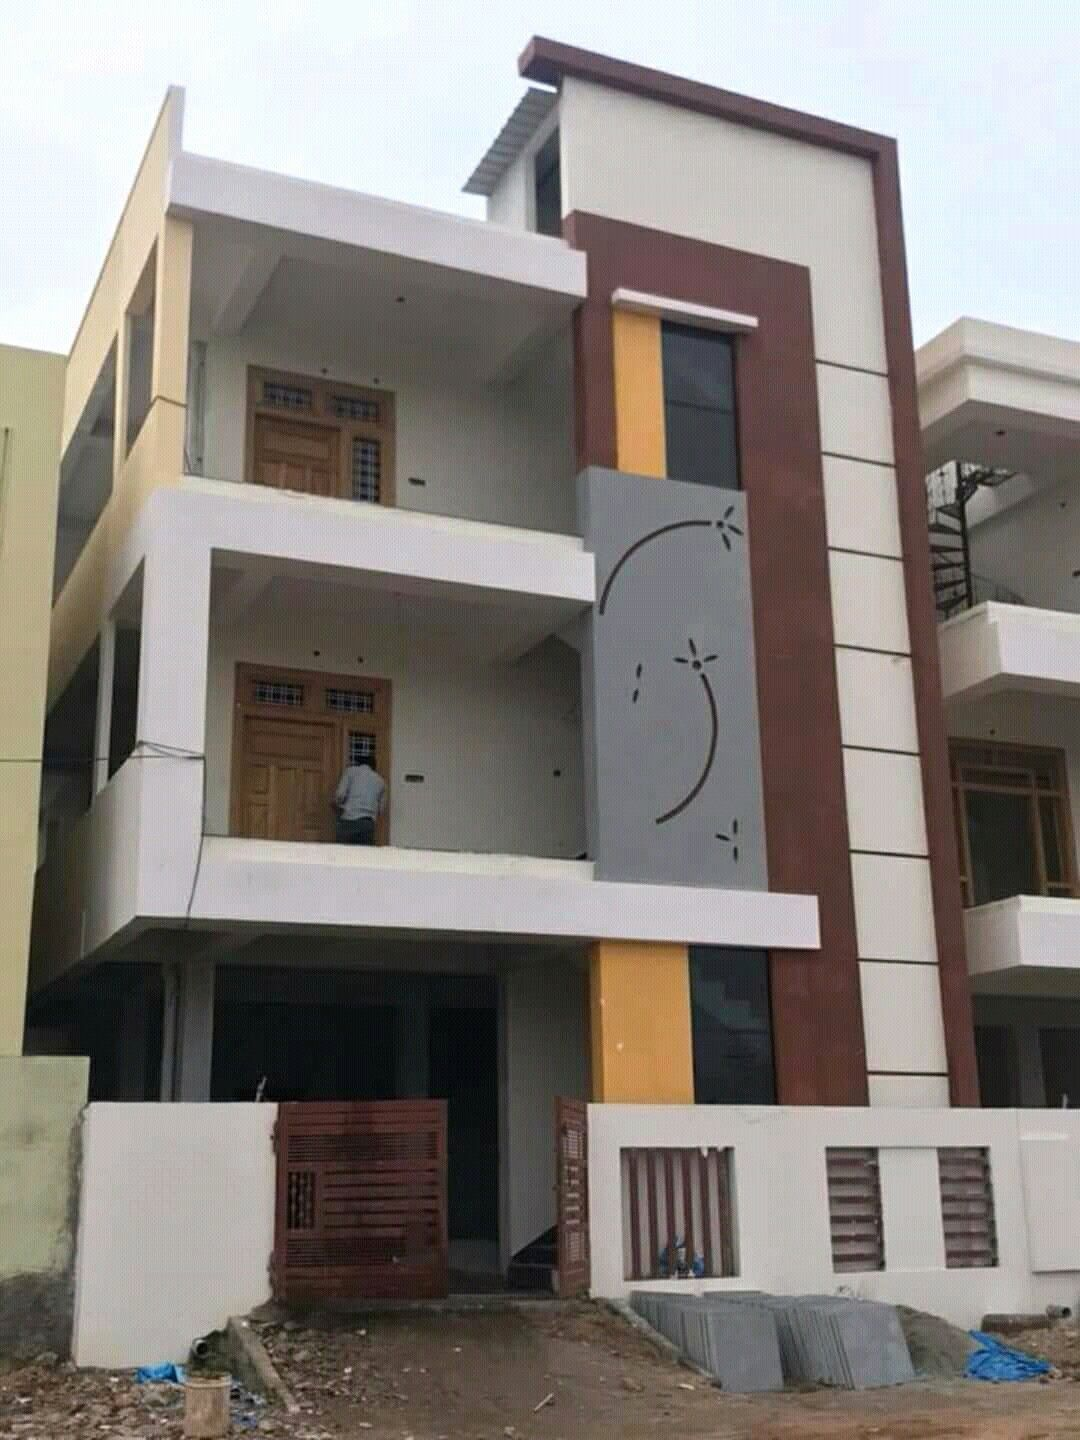 3d Home Designer Deluxe Edition Best Of Home Design Desi In 2020 Small House Elevation Design House Front Design Small House Elevation